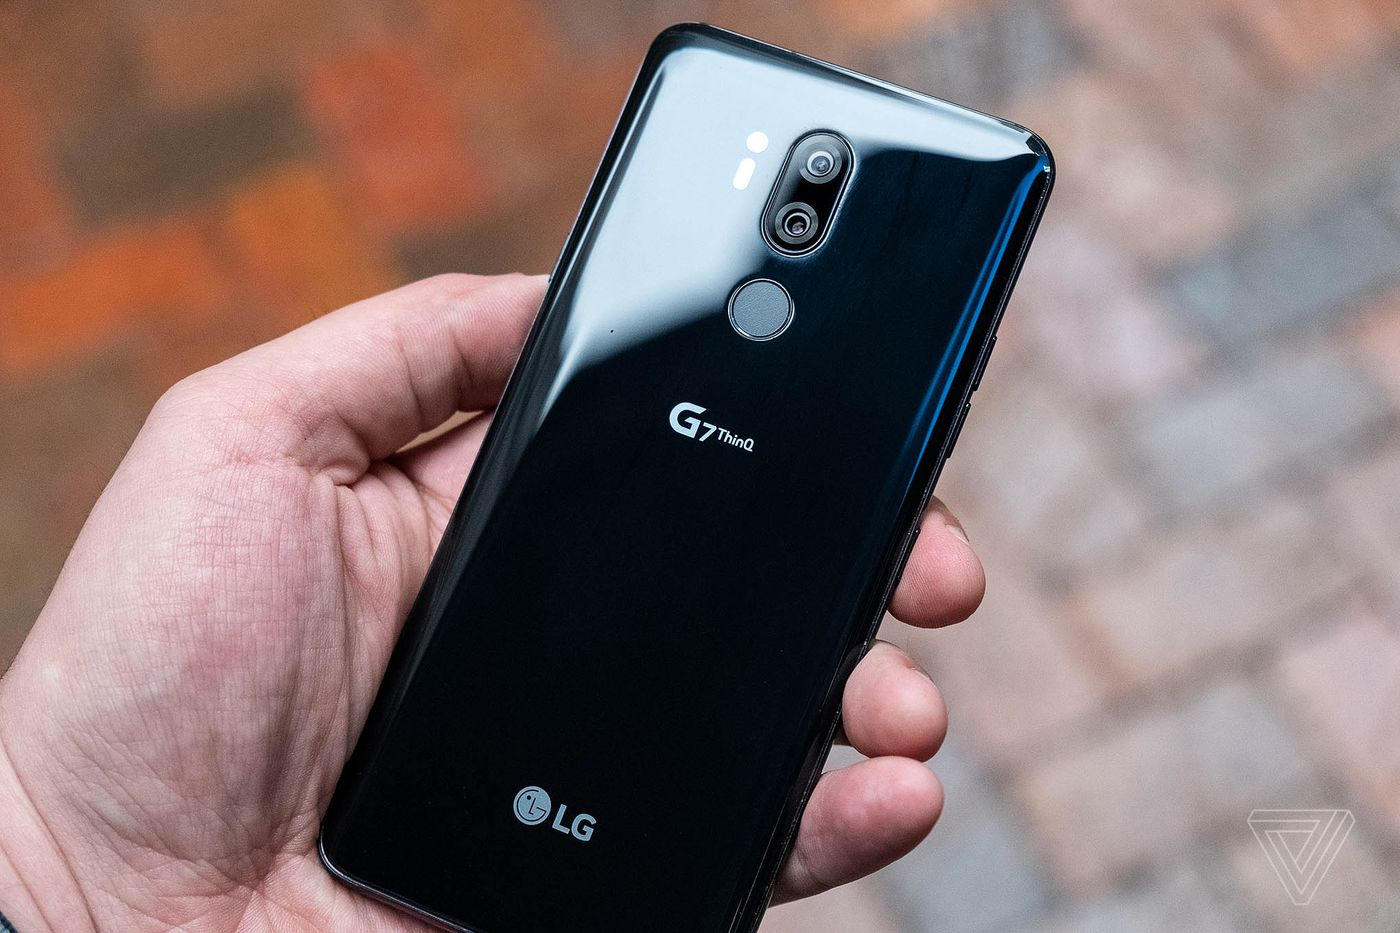 LG G7 ThinQ review: a big price for small improvements - The Verge